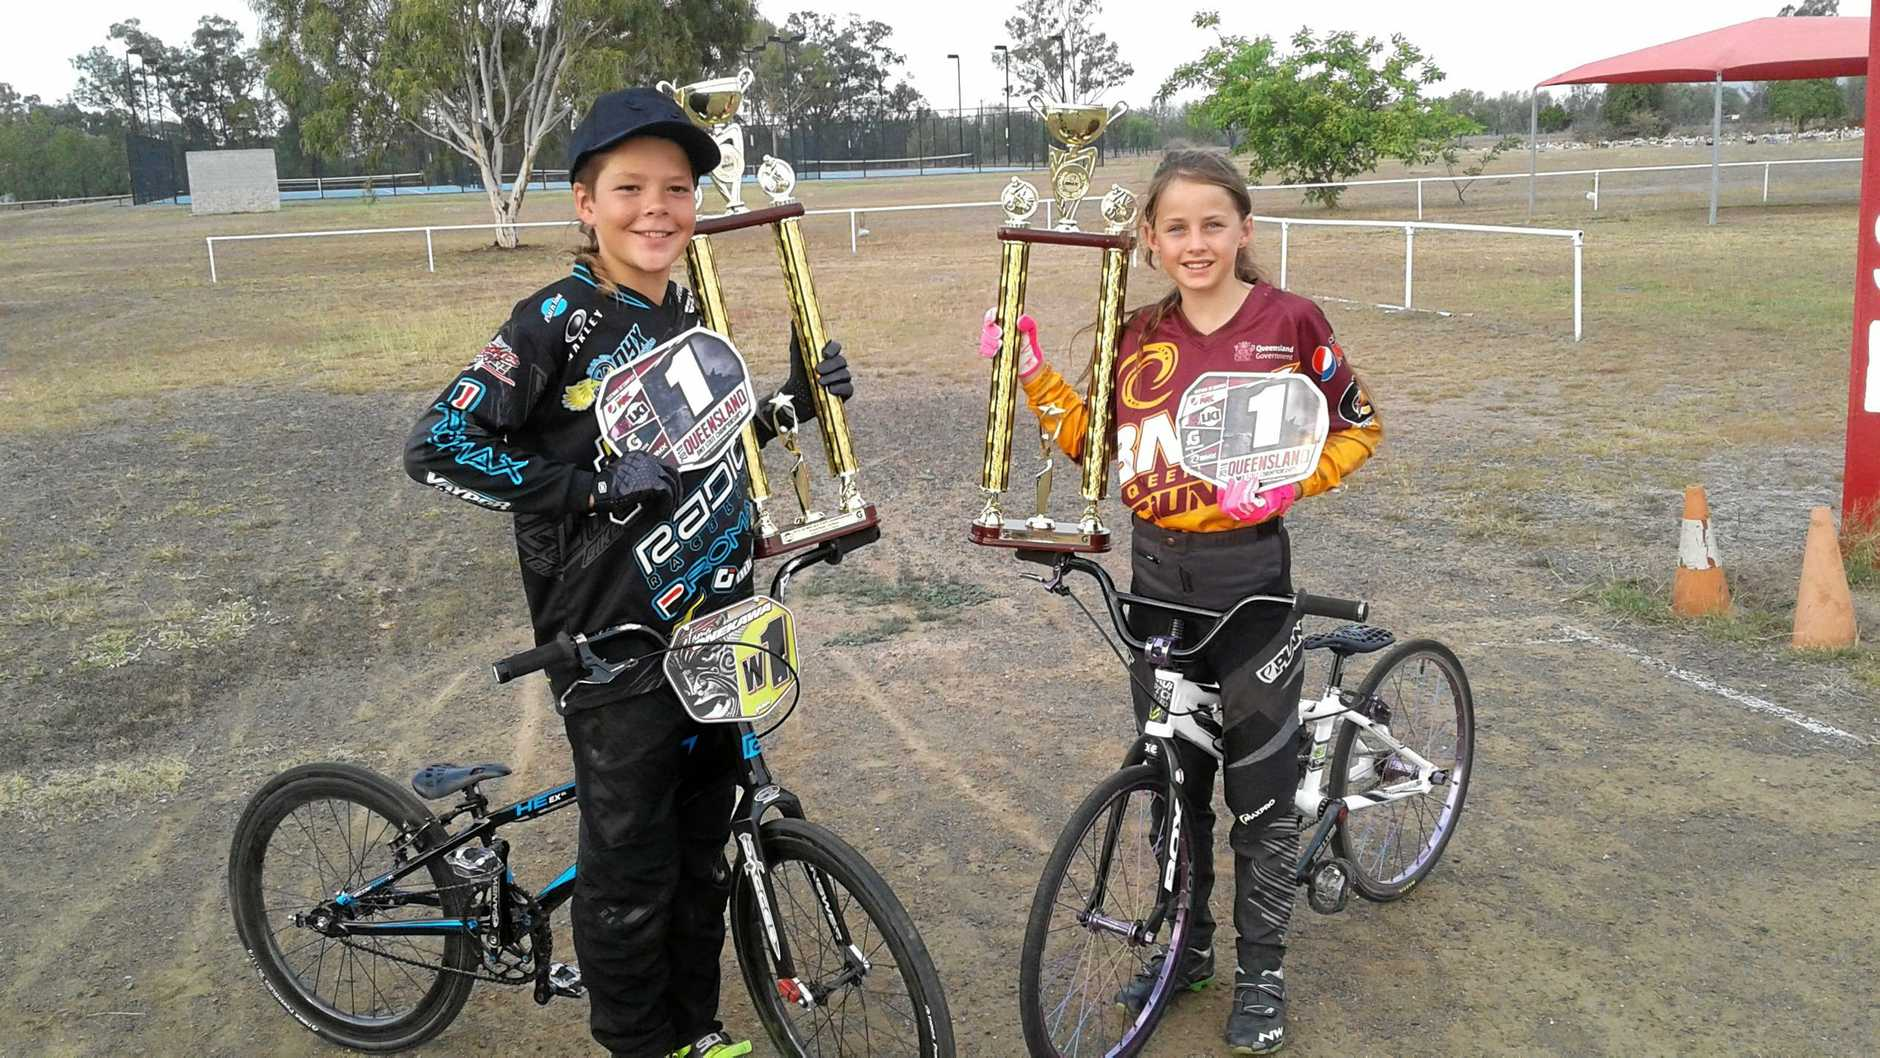 DOING WELL ON WHEELS: Callide Valley BMX Club's Tama Onekawa and Abby Stevens won their state titles at the 2018 LKI BMX Championships in September.